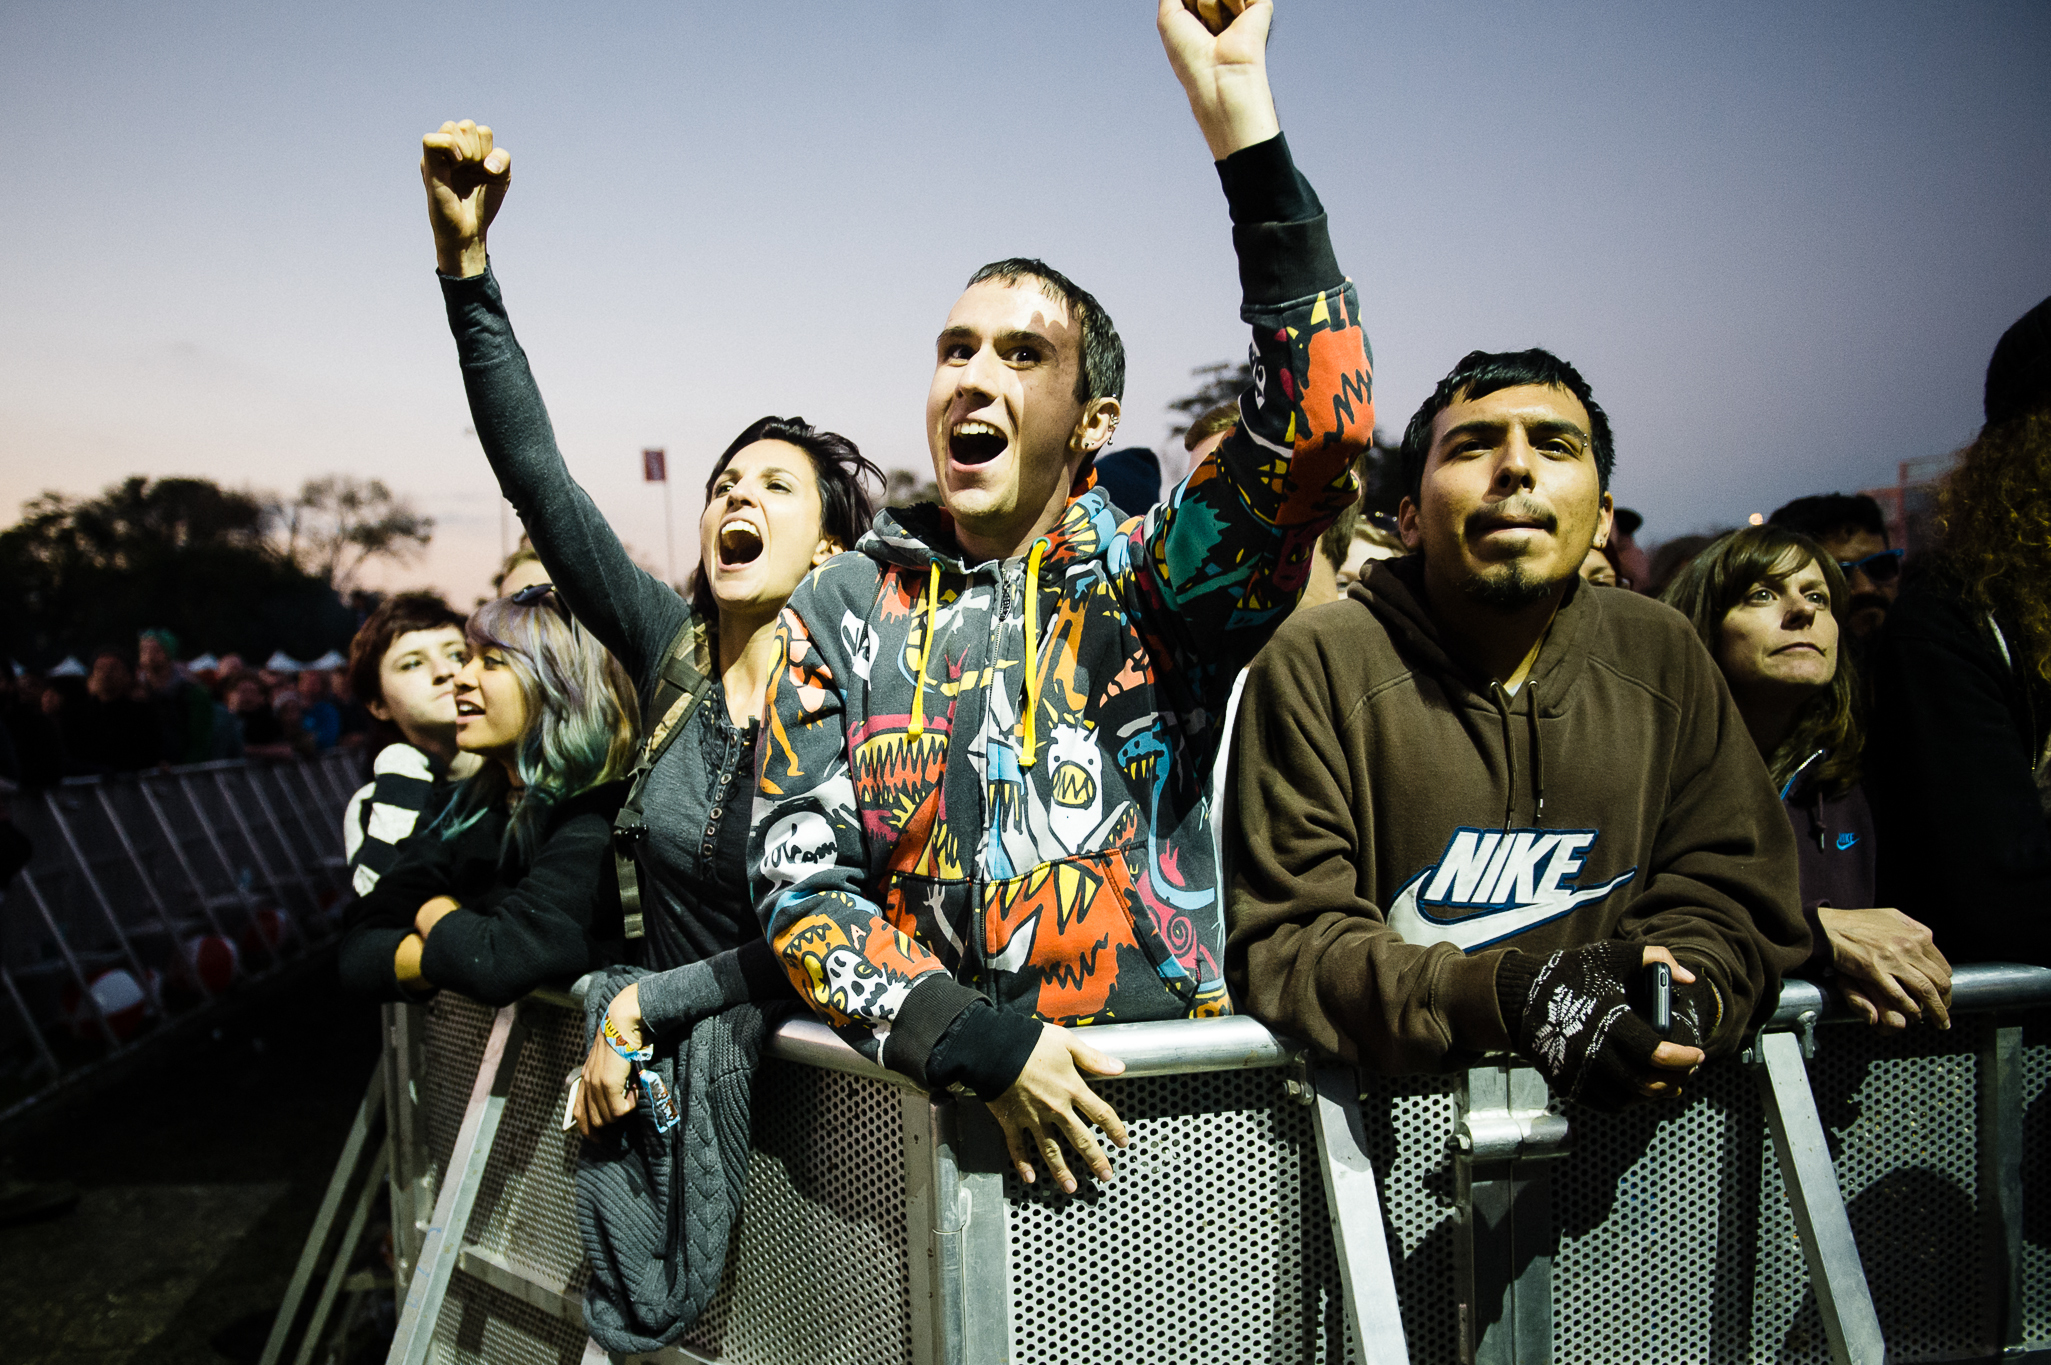 Humboldt Park is filled with punks and rockers during Riot Fest Chicago on September 13, 2014.​